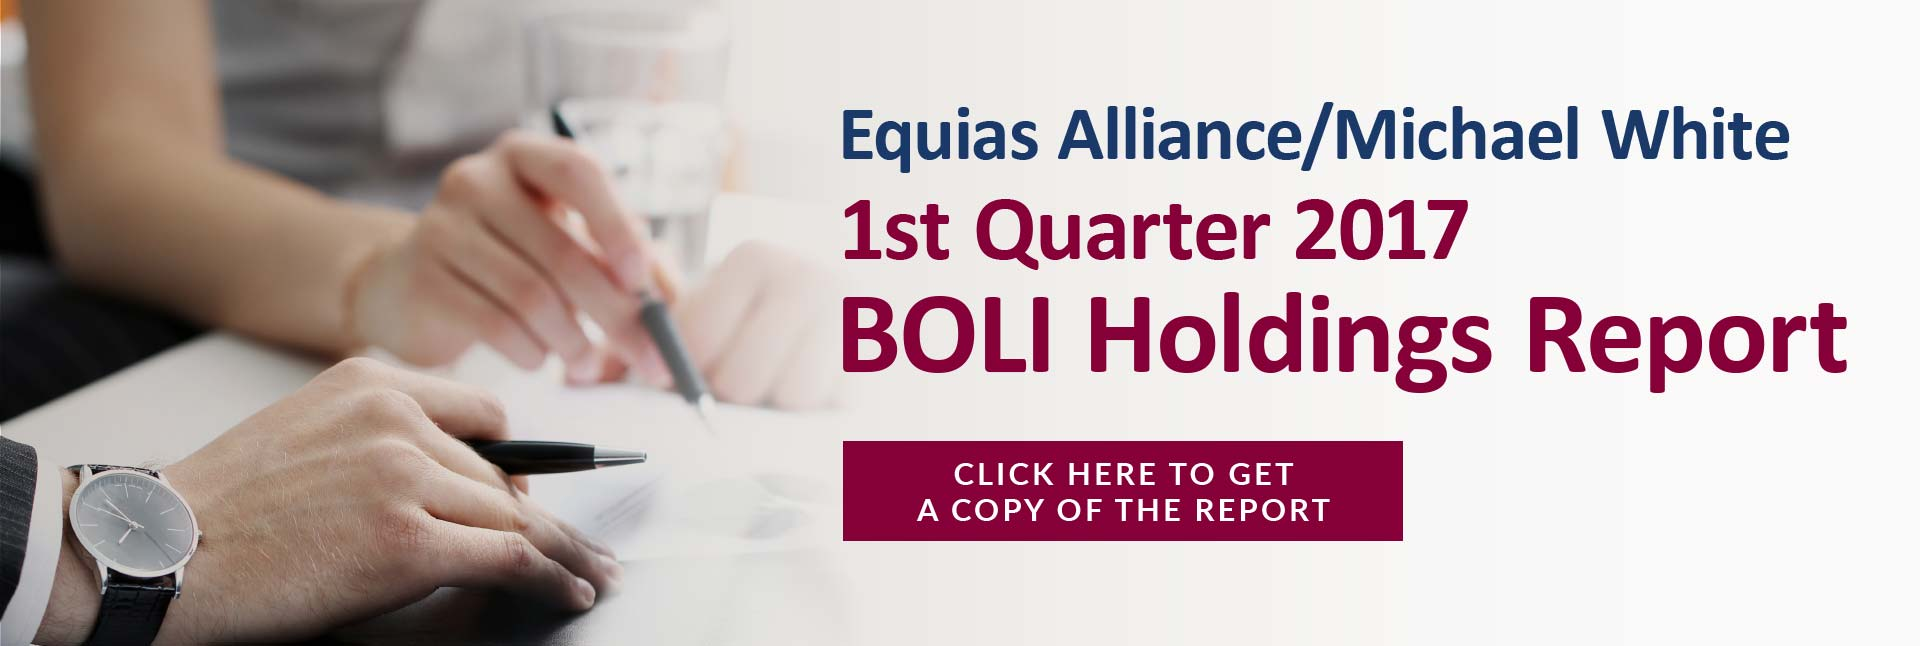 Equias Alliance/Michael White 1st Quarter 2017 BOLI Holdings Report - Click Here to Get a Copy of the Report